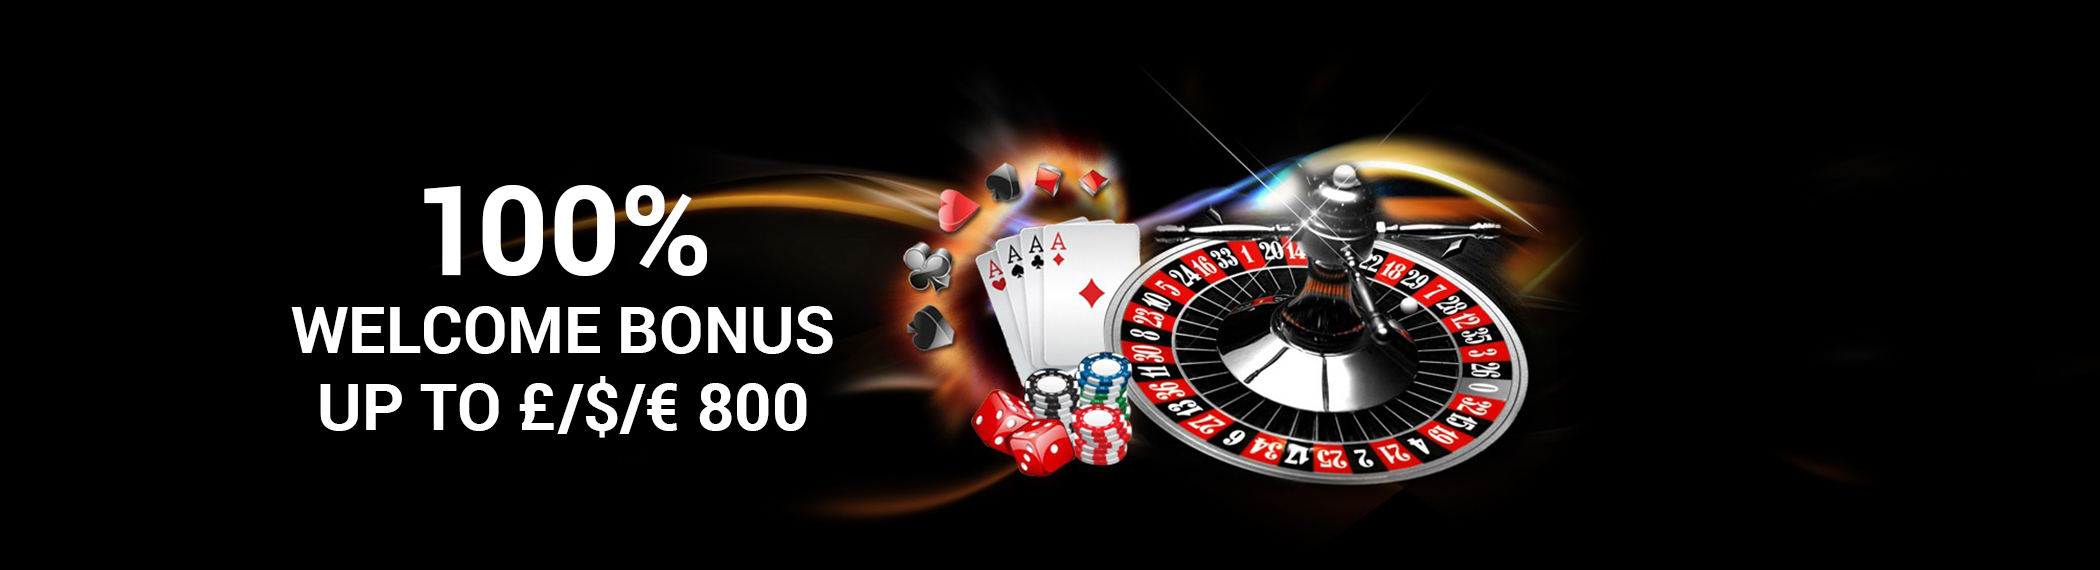 UK Casino Instant Deposit Bonus Reward